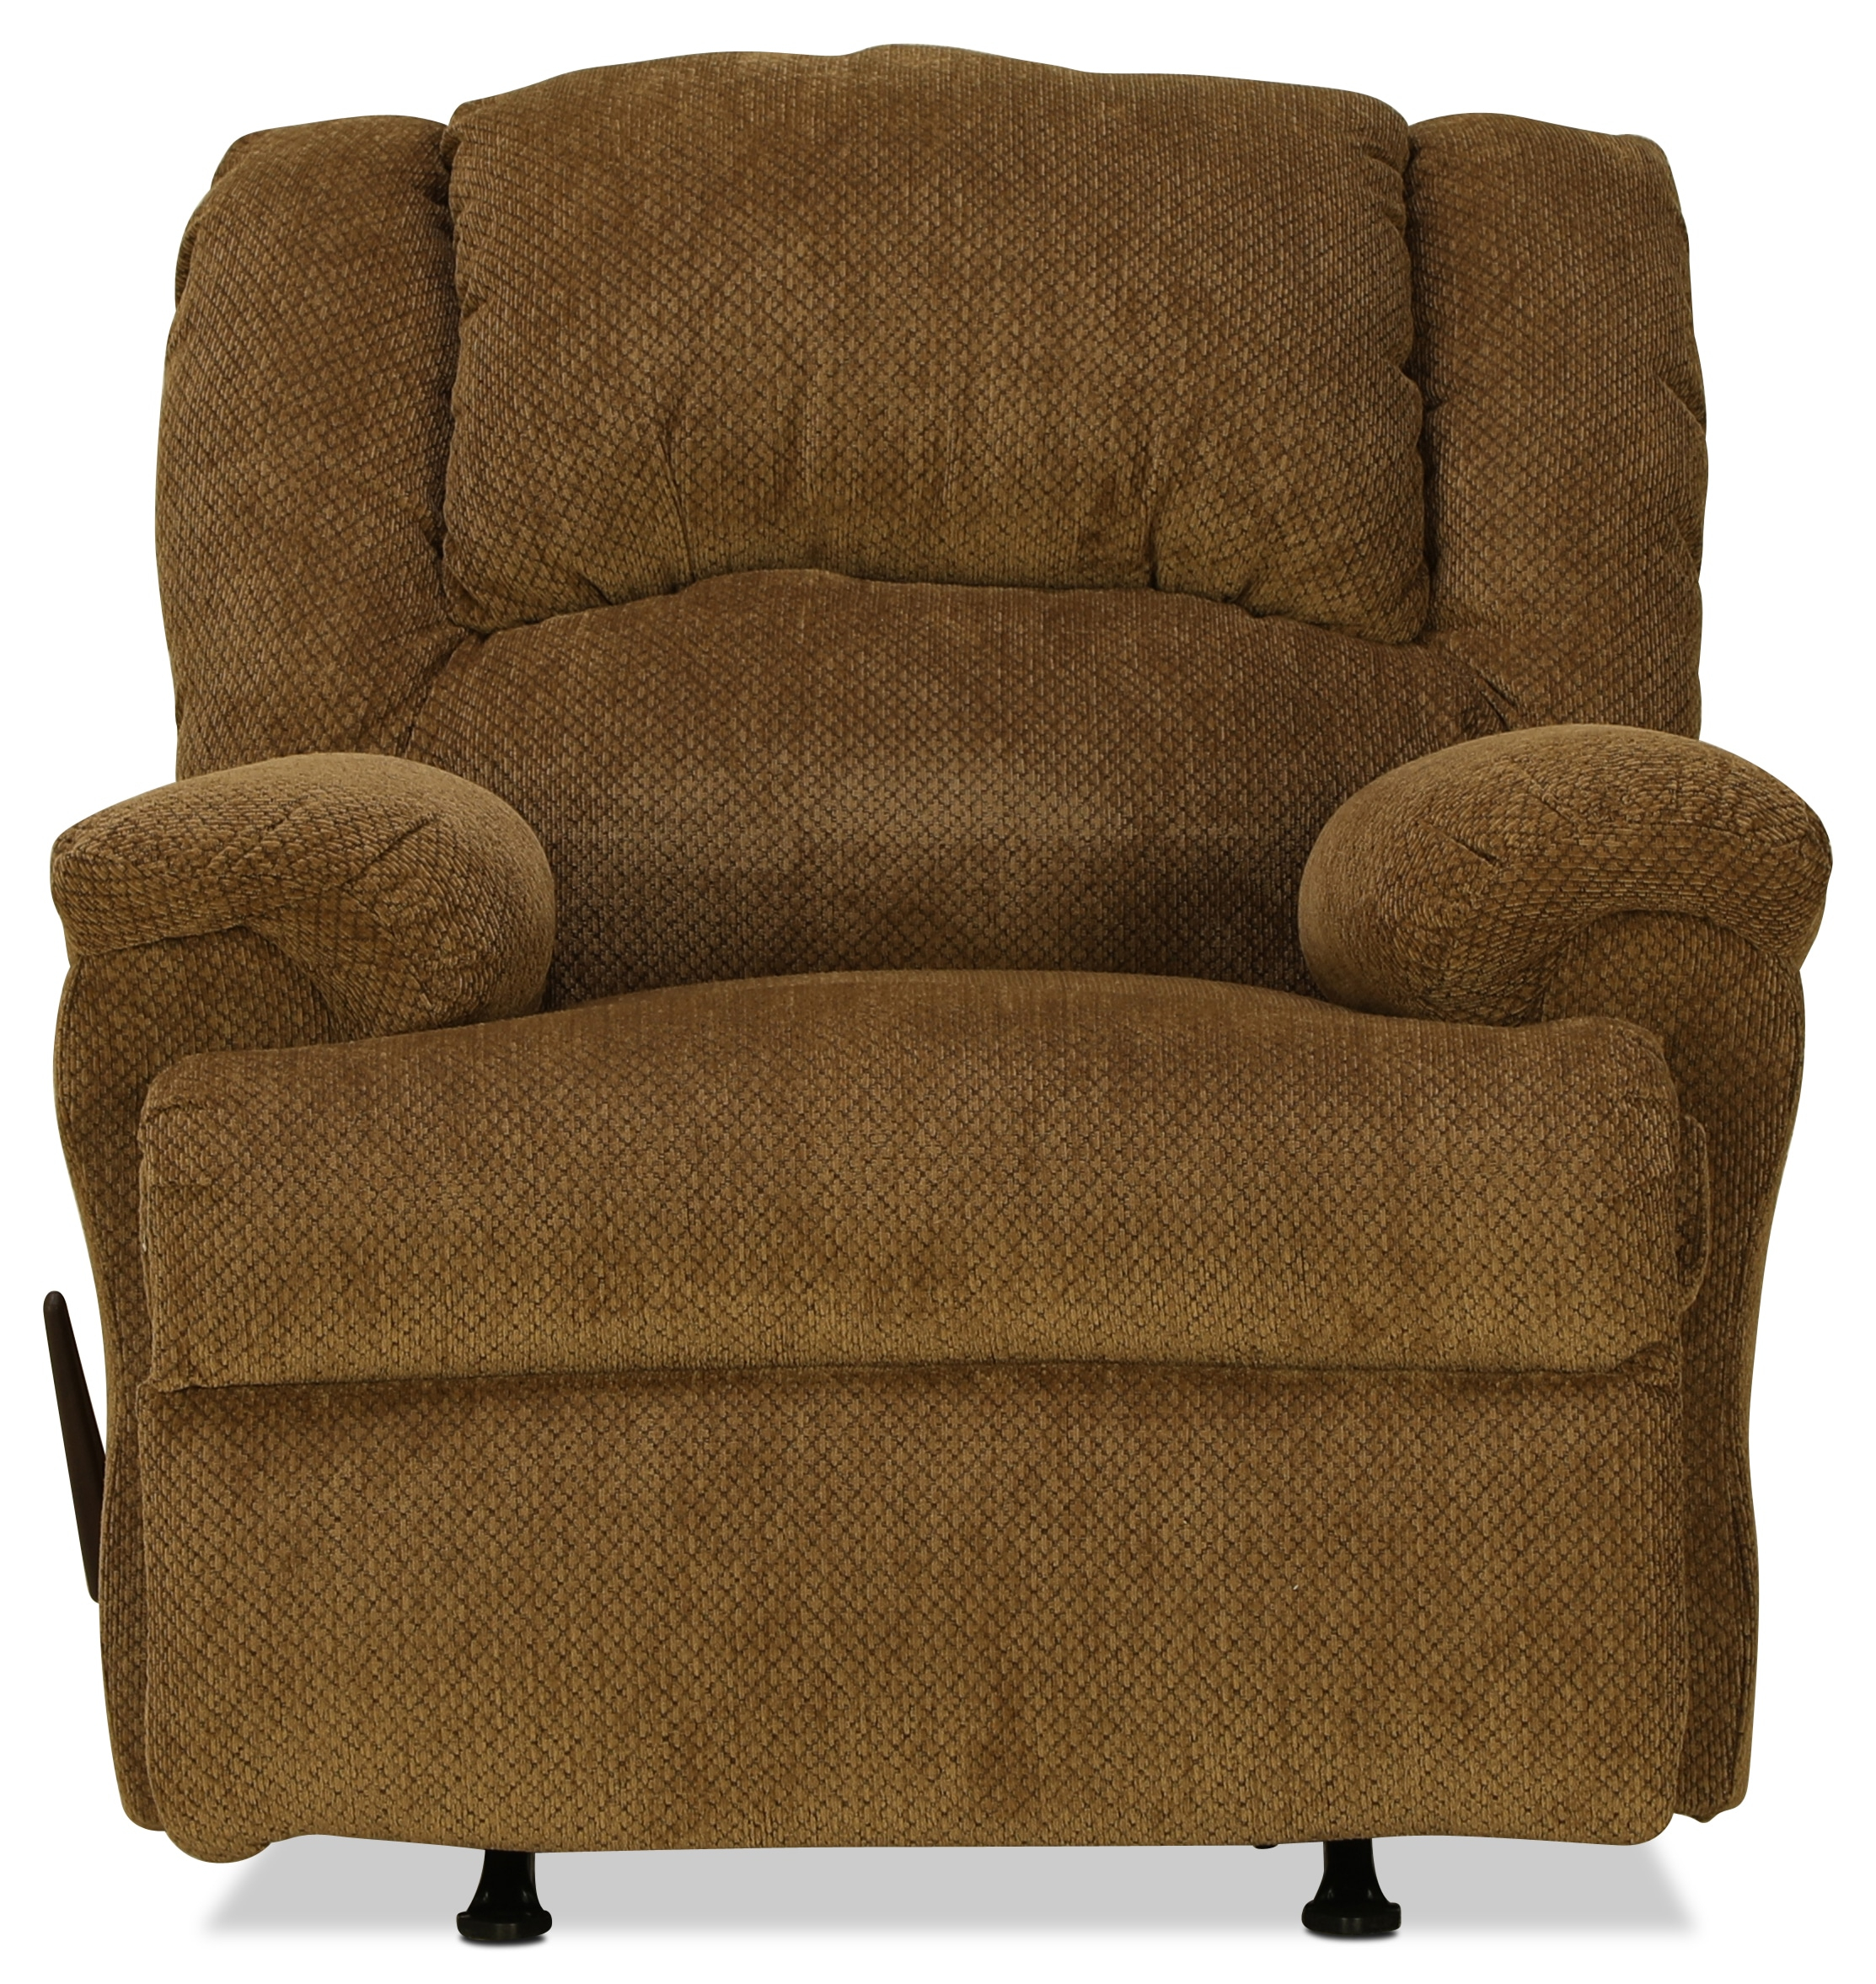 Decker Rocker Recliner – Mocha | For Decker Ii Fabric Swivel Glider Recliners (Image 9 of 20)